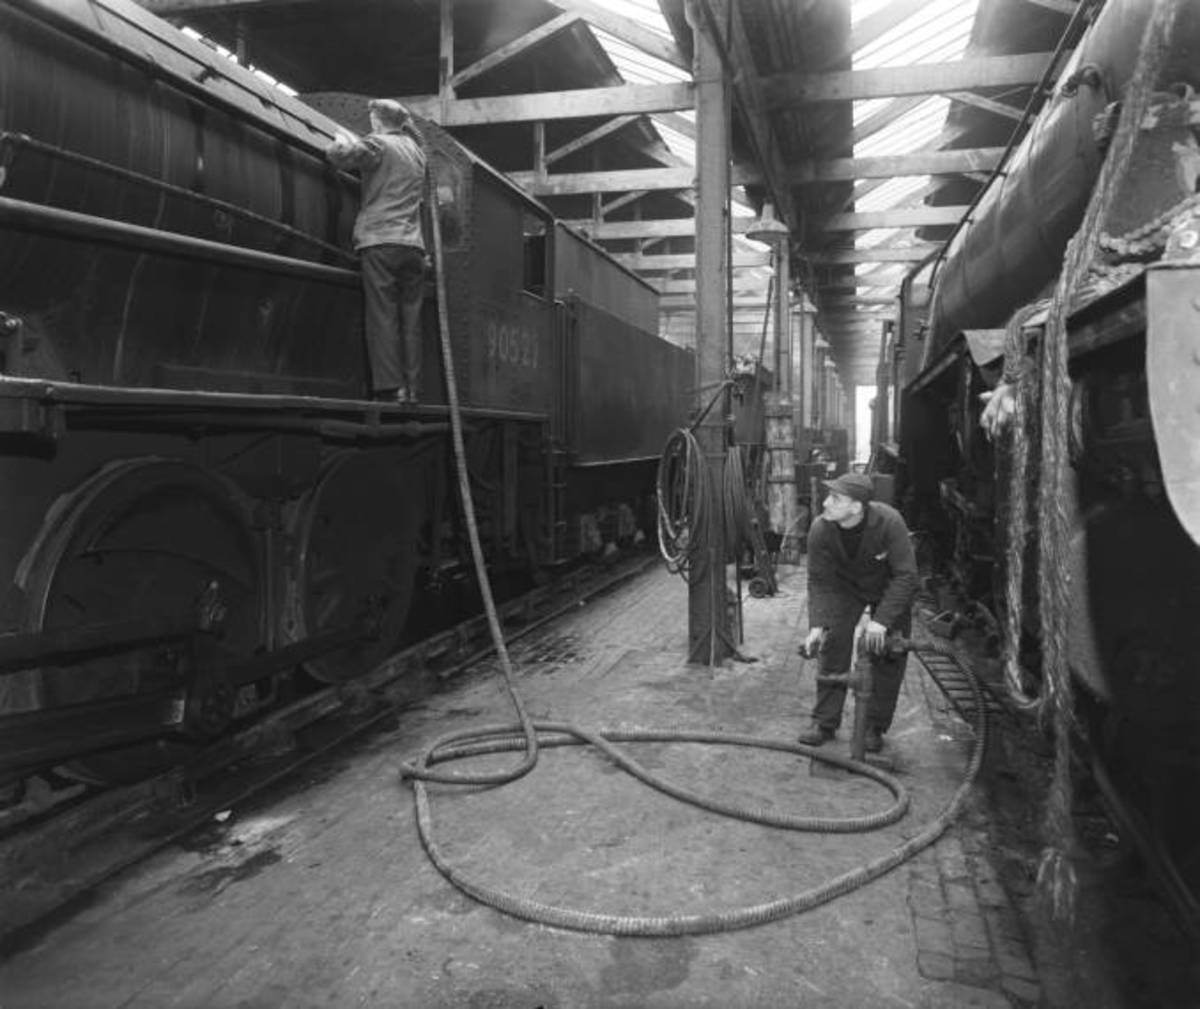 Cleaners at March shed (Eastern Region) at work in 1960